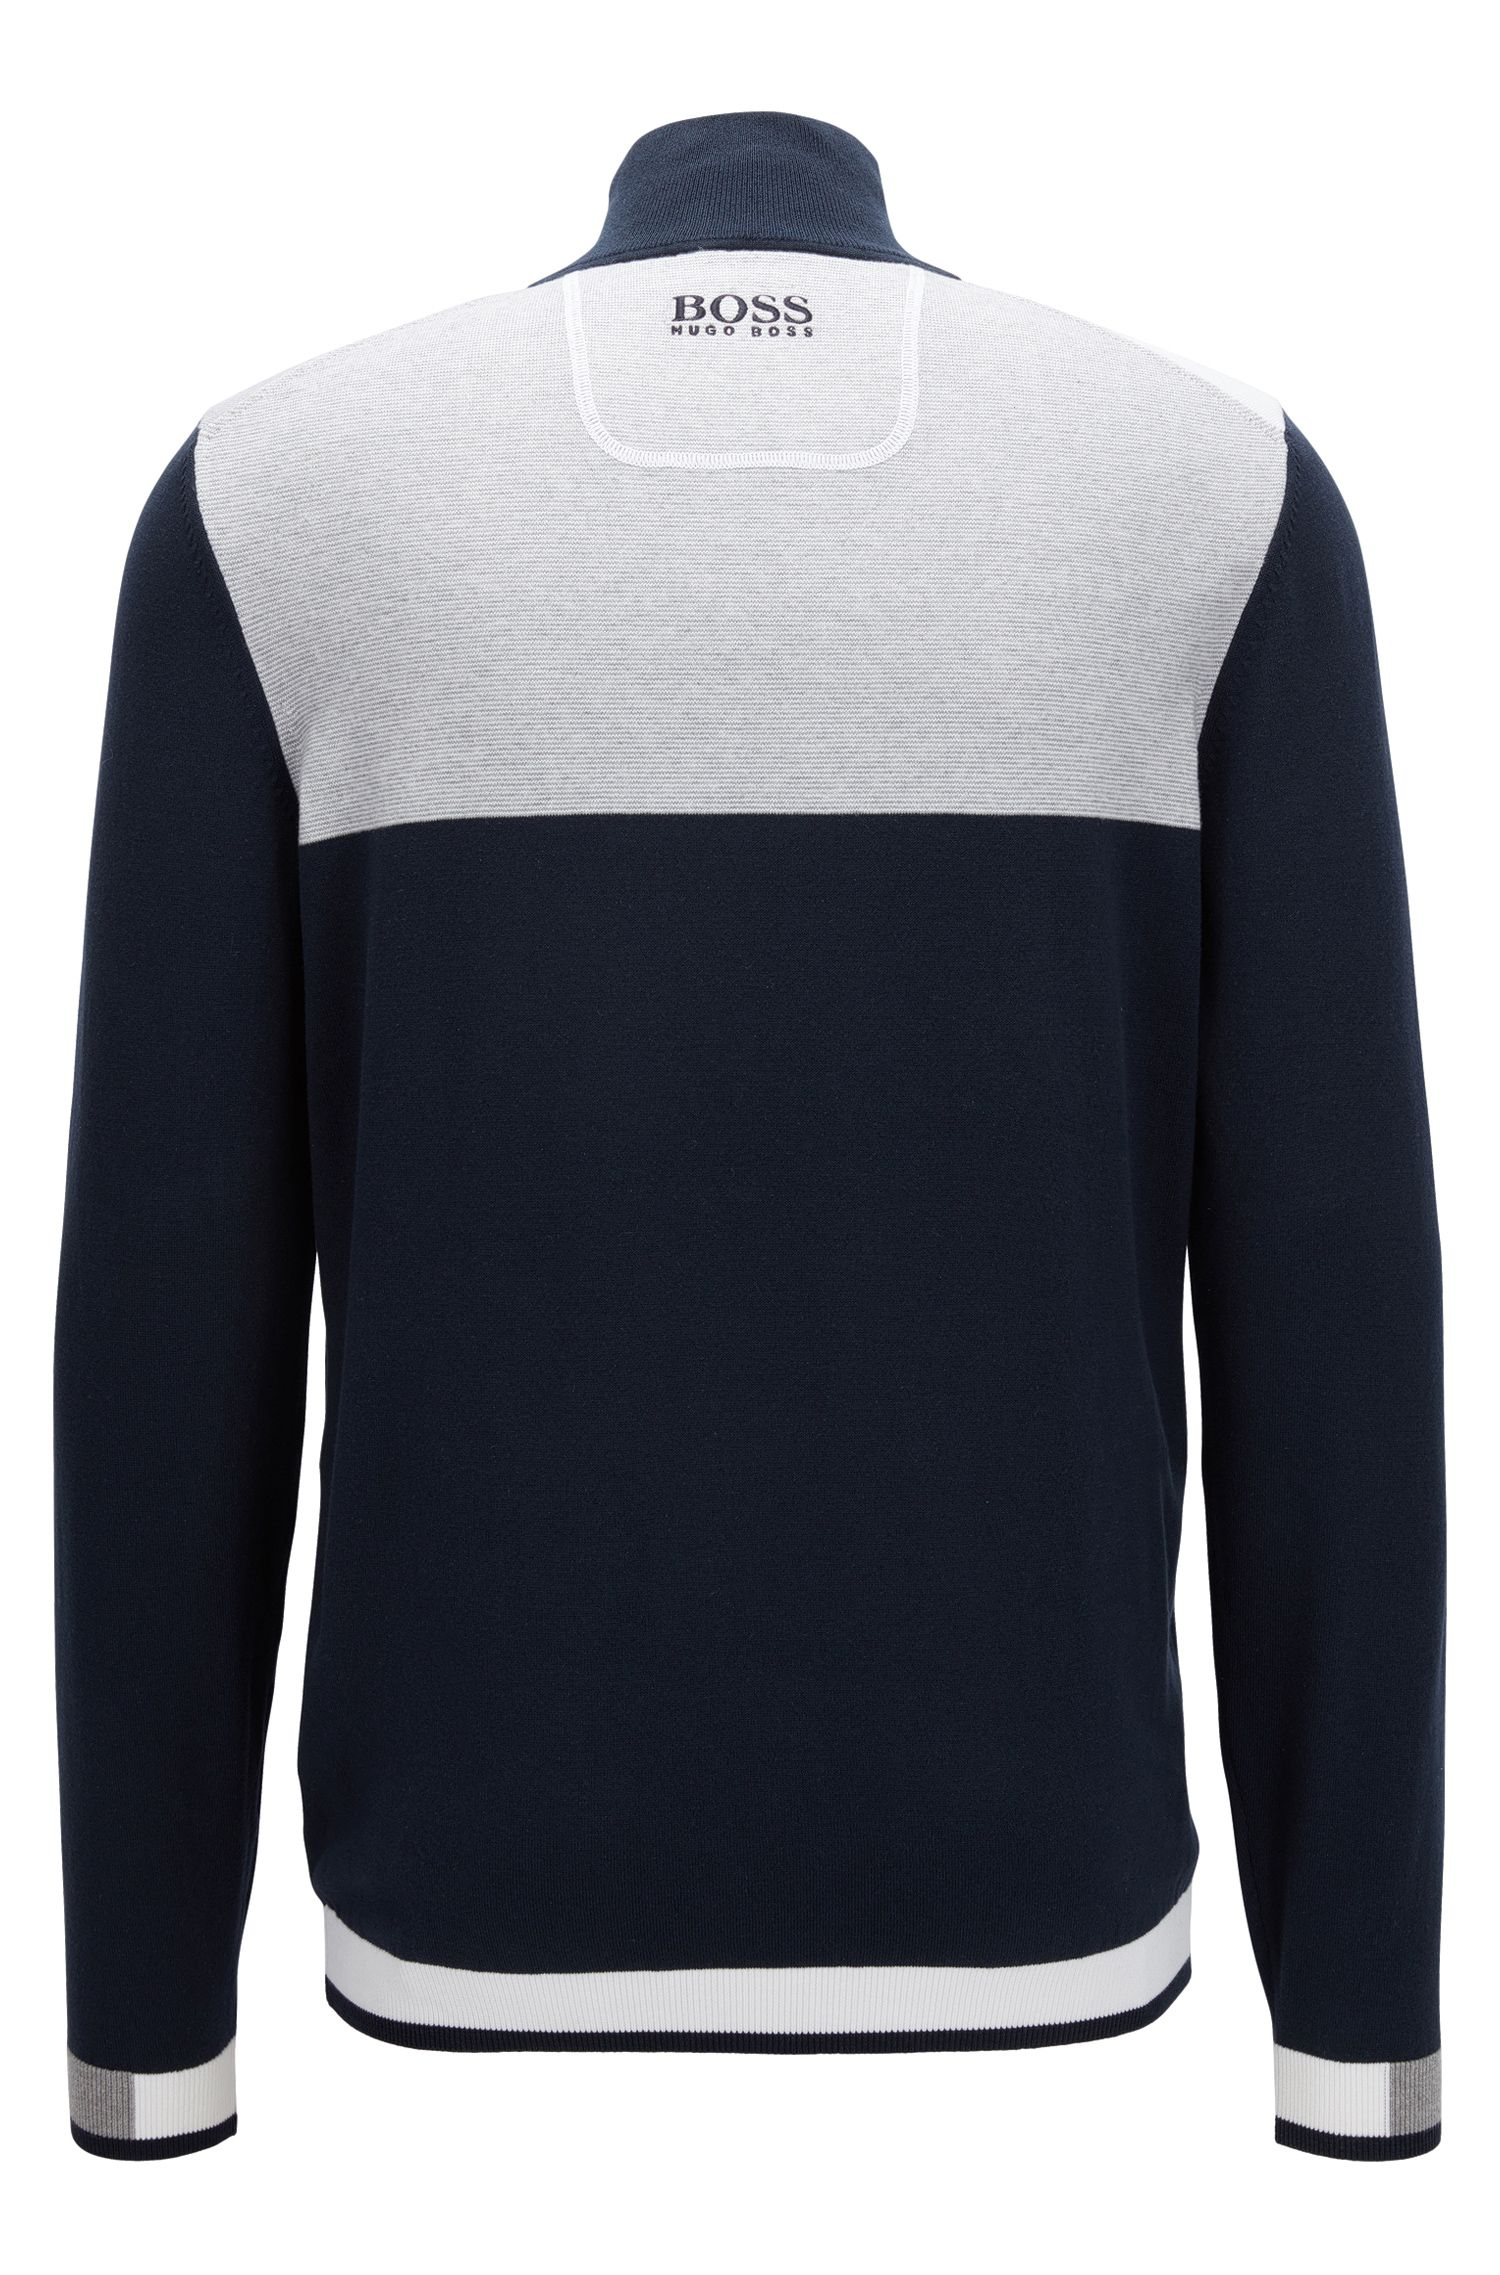 Pullover aus Baumwoll-Mix mit Troyer-Kragen aus der Professional Golf Collection